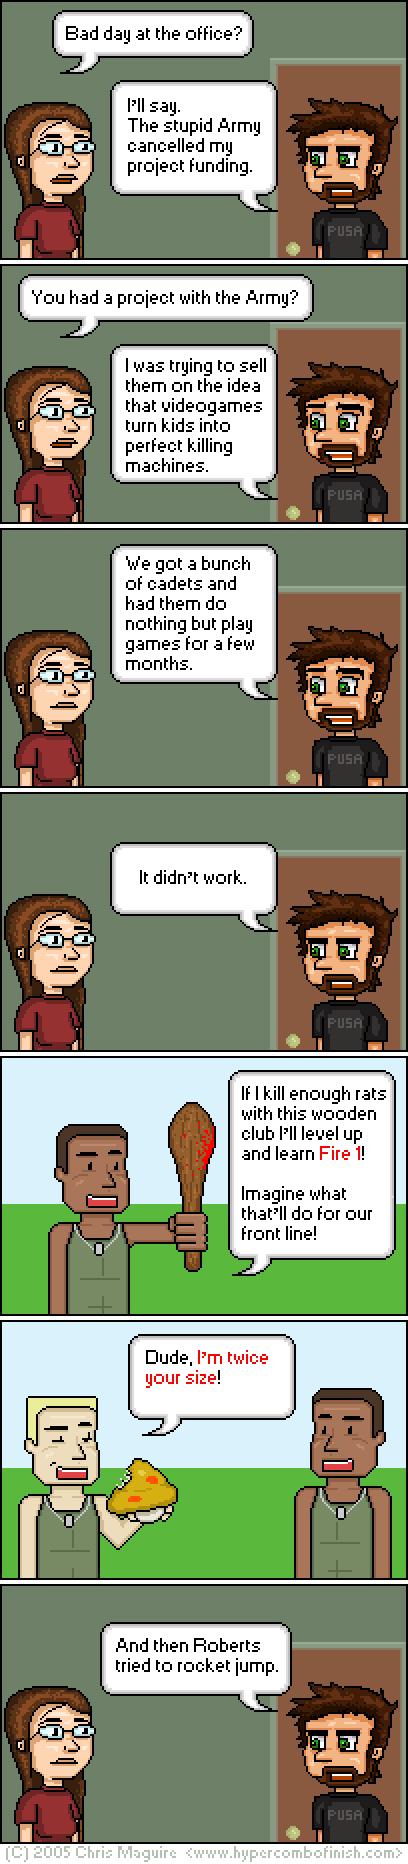 Hypercombofinish Comic #20 by Chris Maguire